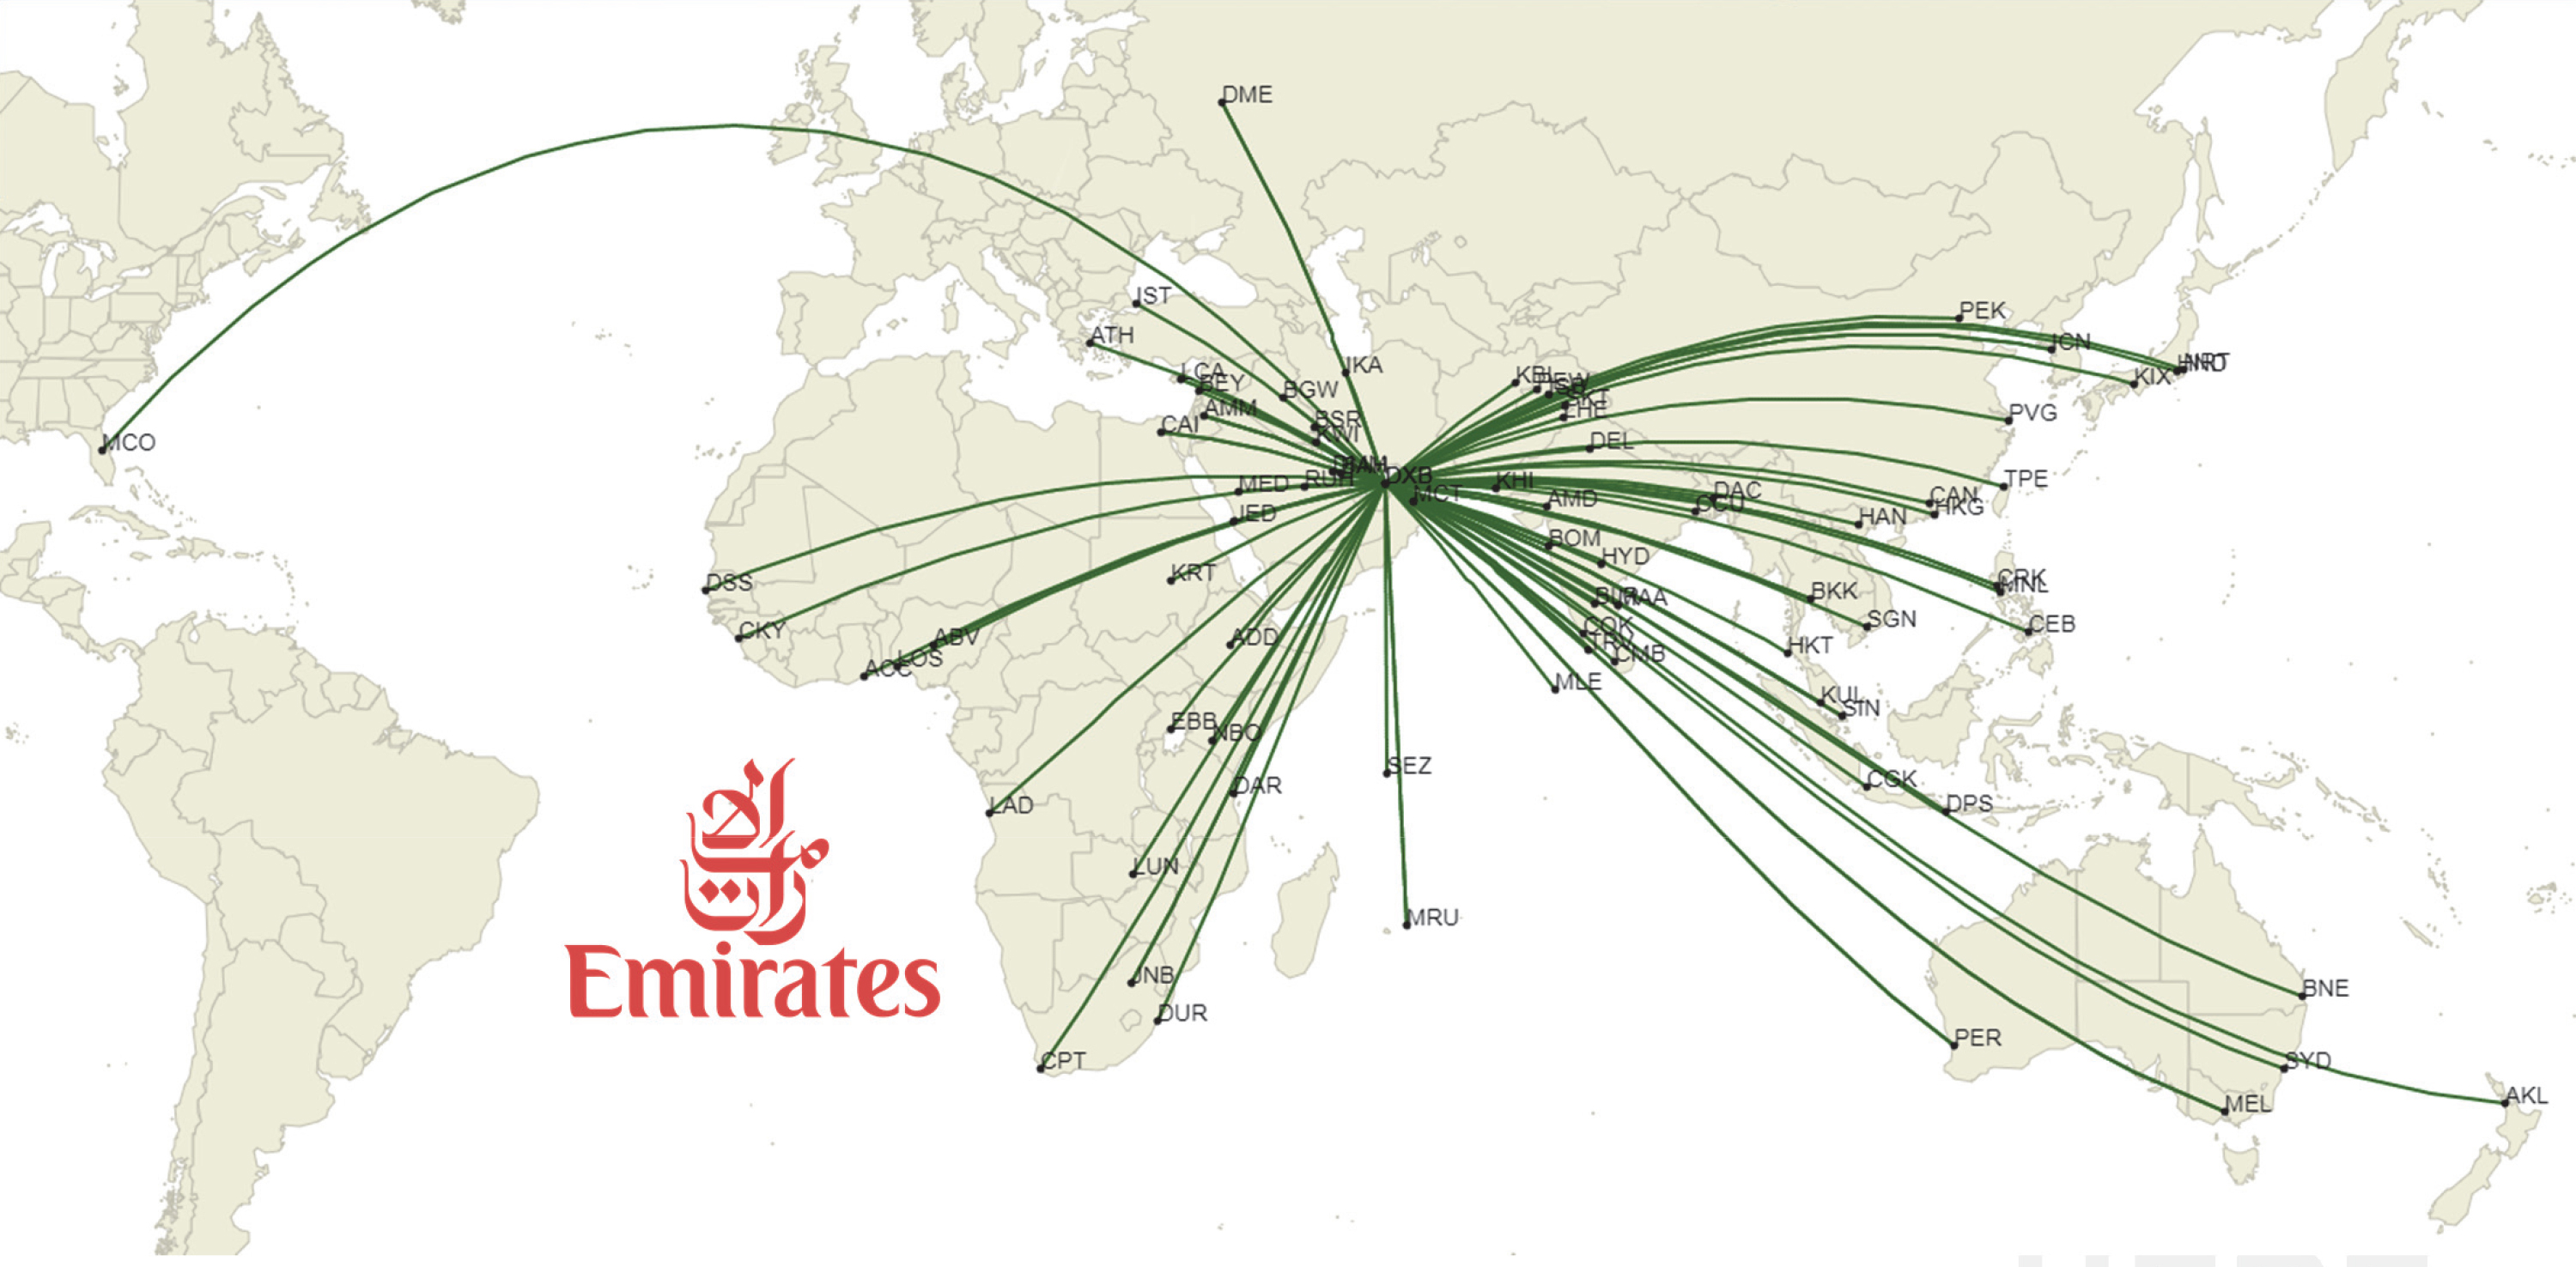 Emirates Route Map